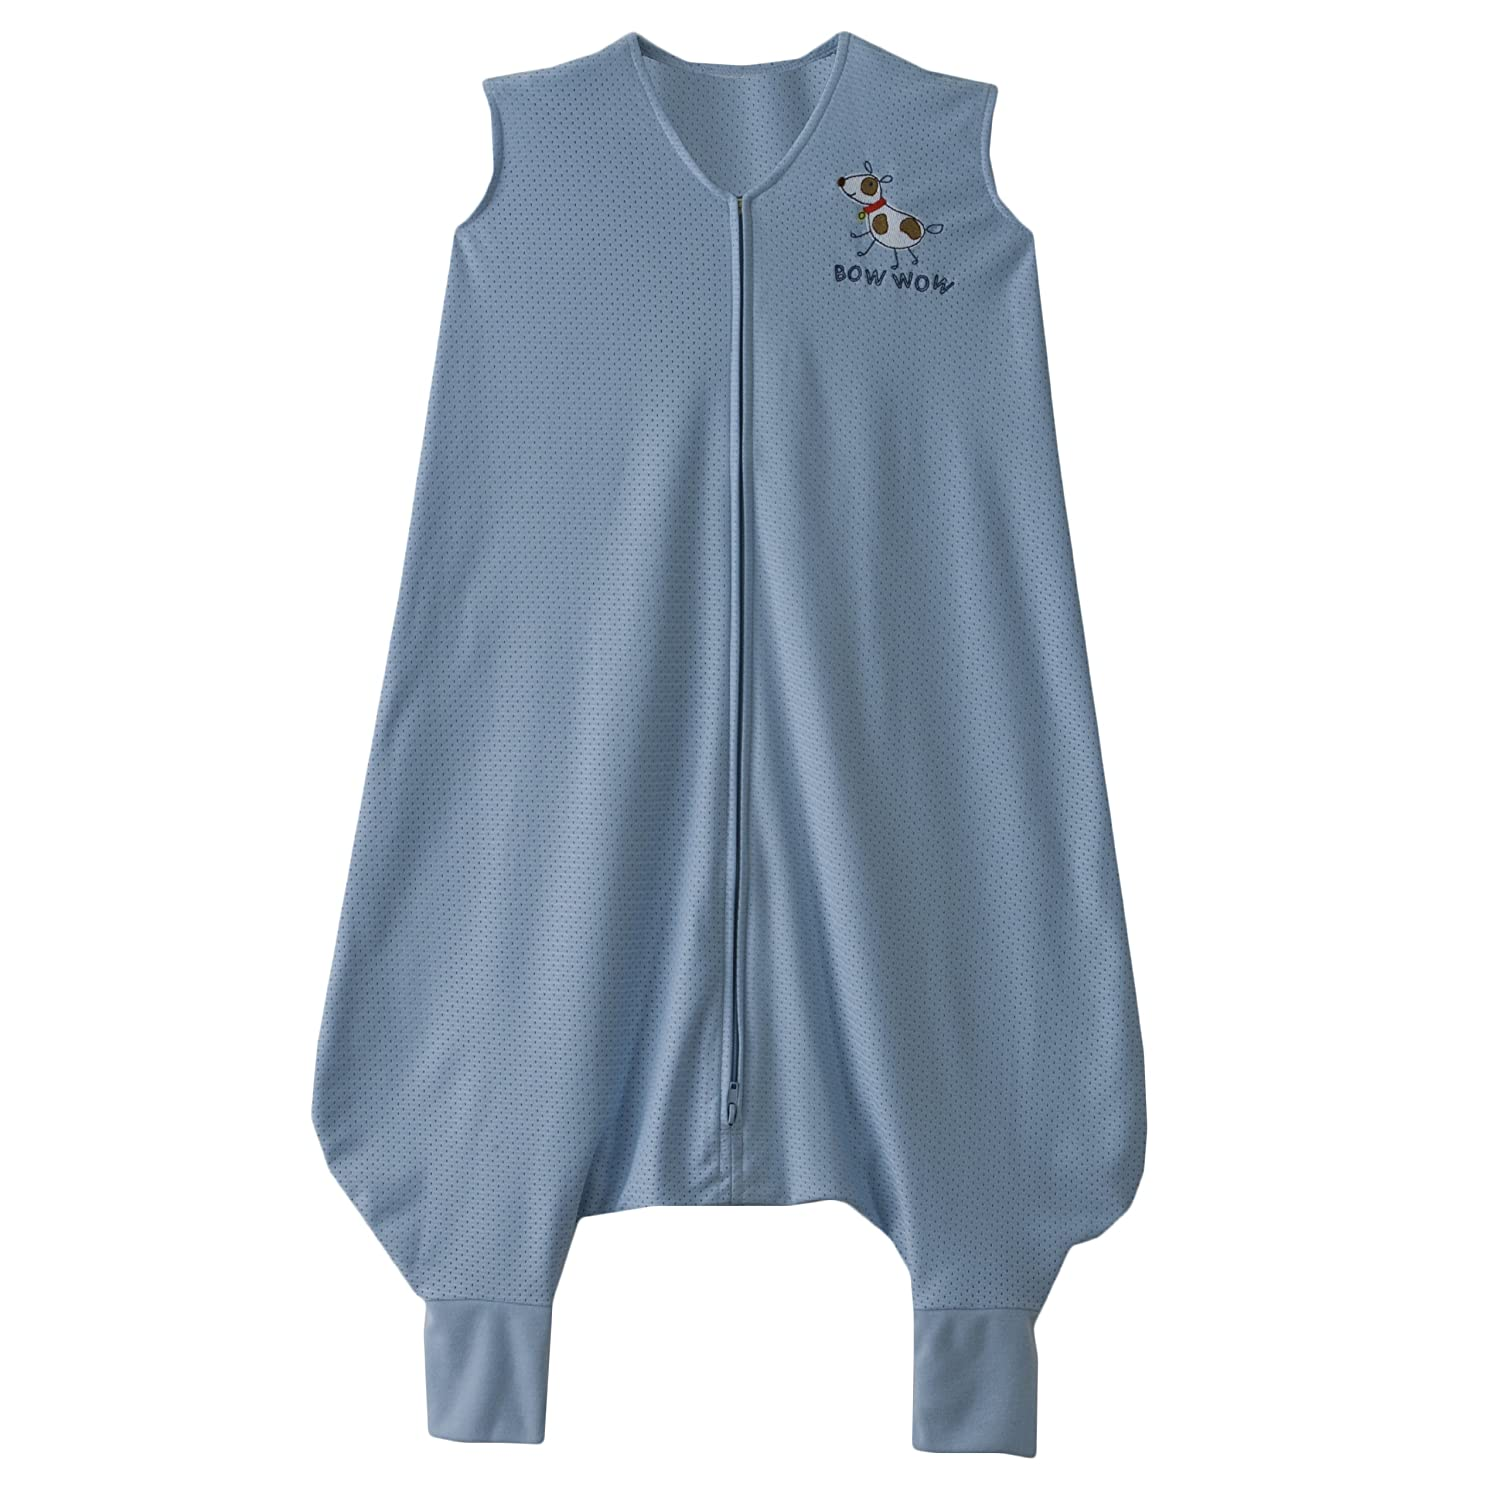 Halo Sleep - Saco - bebé Blue Pup Pals Talla:Large 12-18 Months: Amazon.es: Bebé